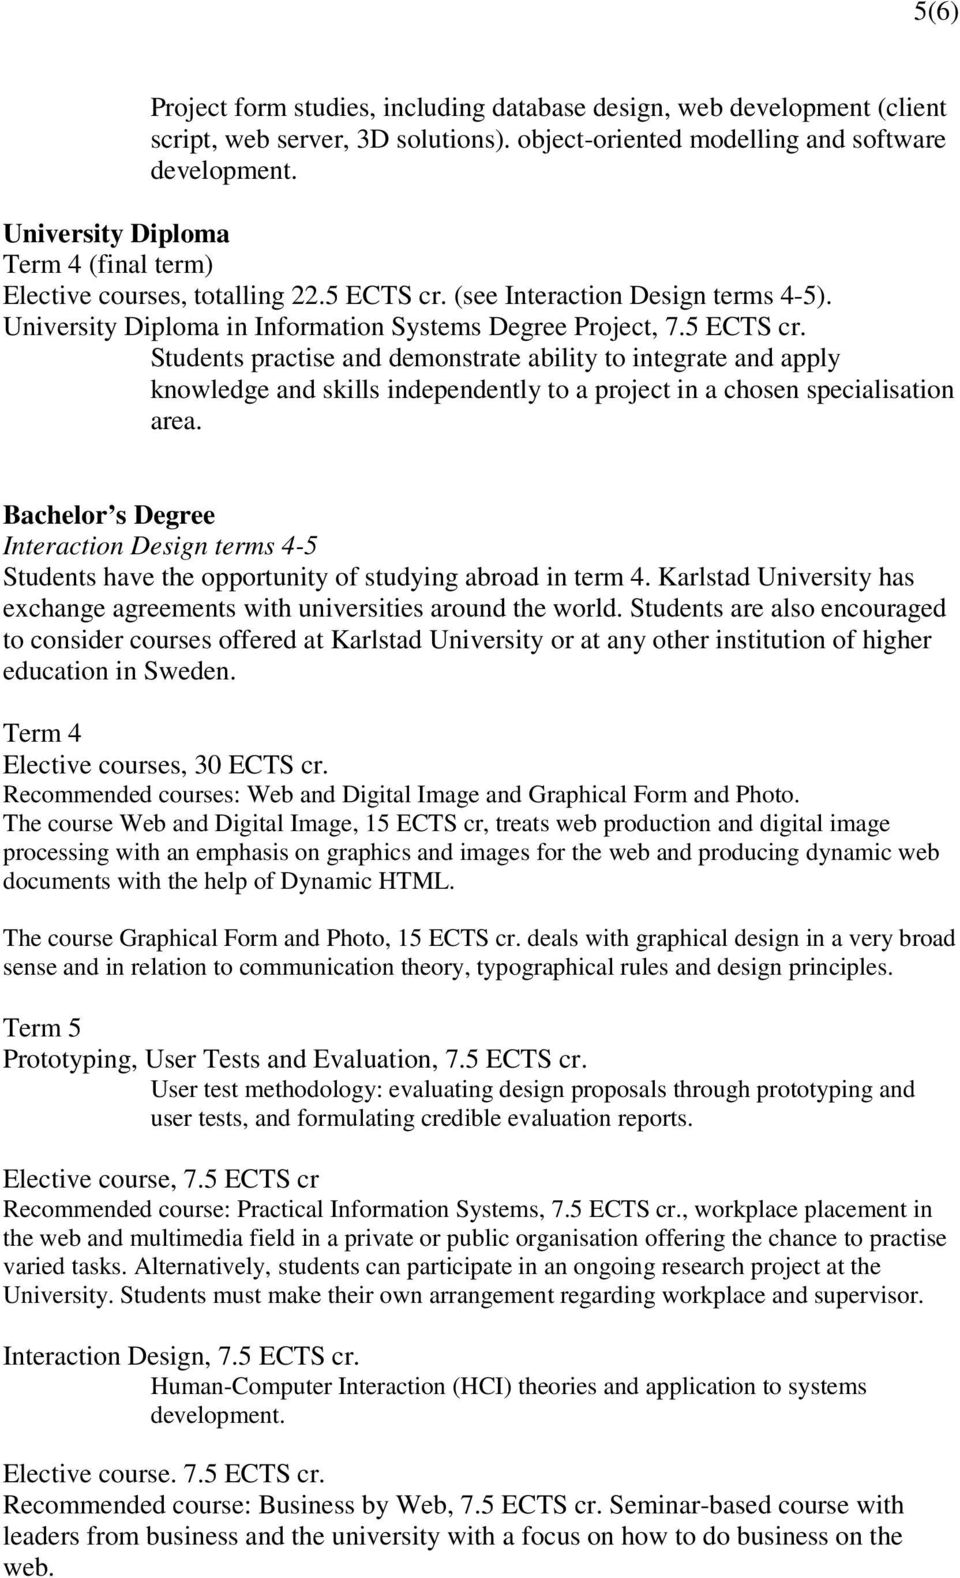 (see Interaction Design terms 4-5). University Diploma in Information Systems Degree Project, 7.5 ECTS cr.